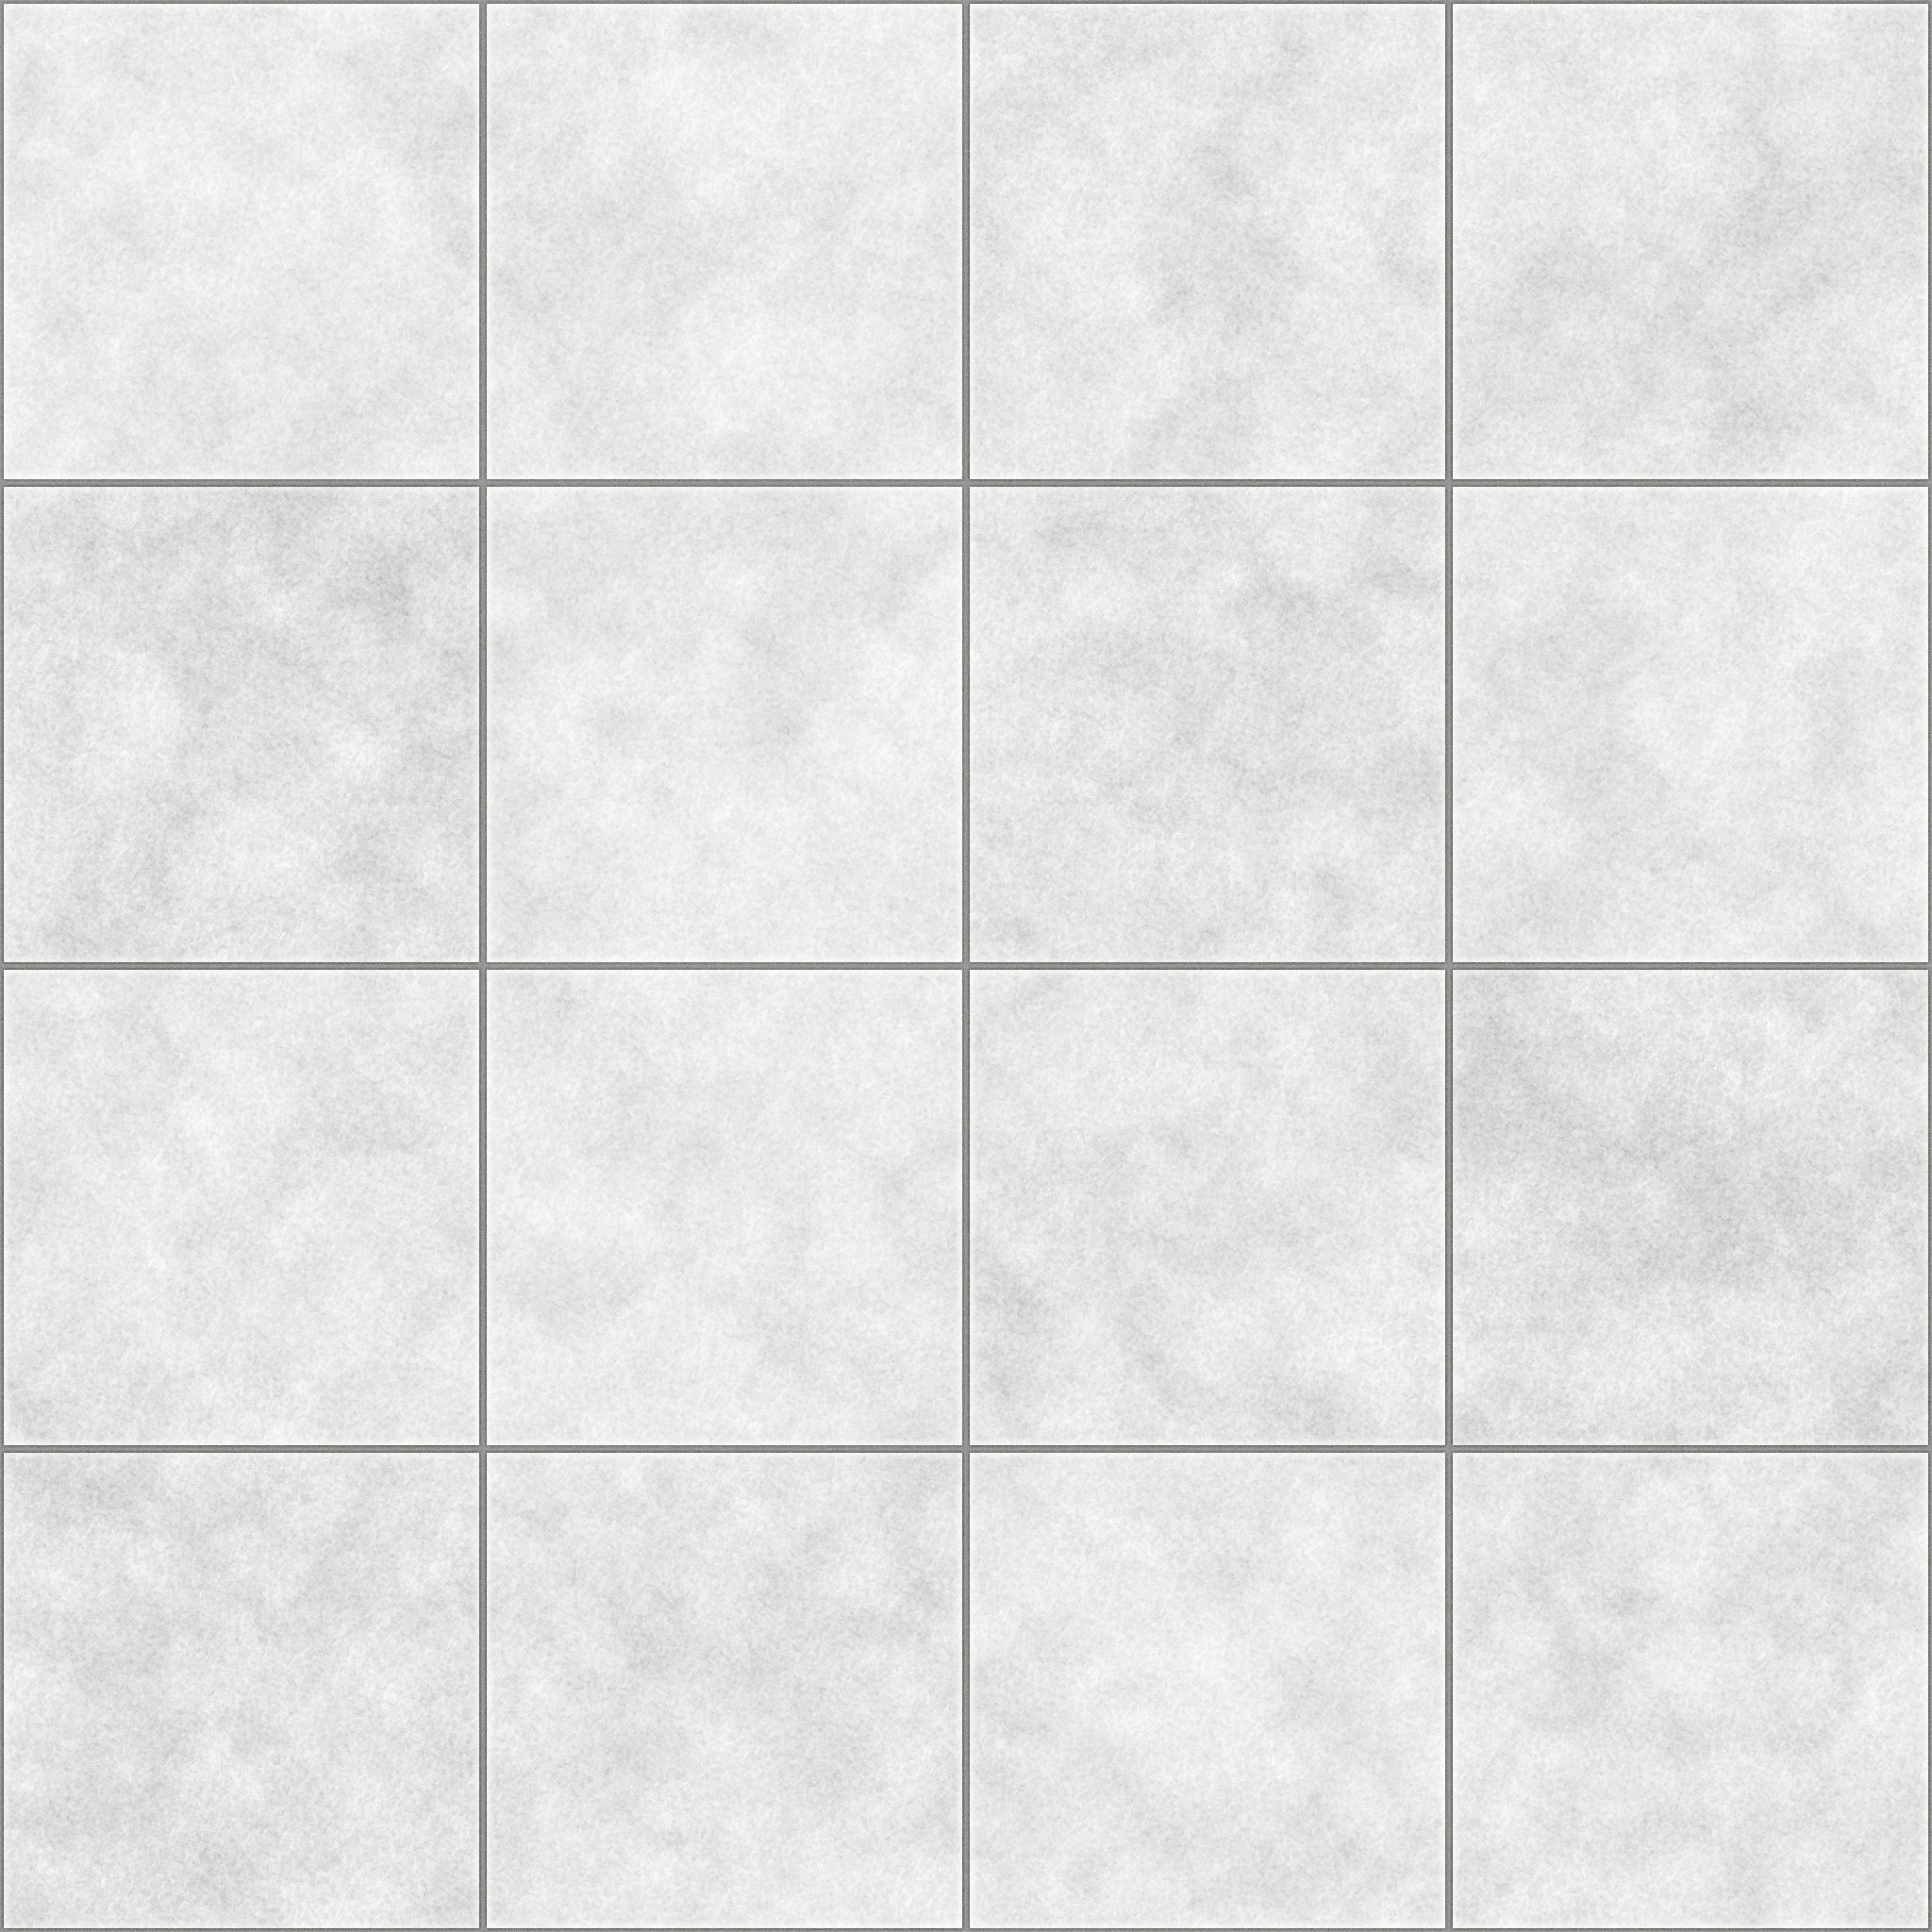 Home Element Marble Floor Tiles Texture Tileable 2048×2048 By